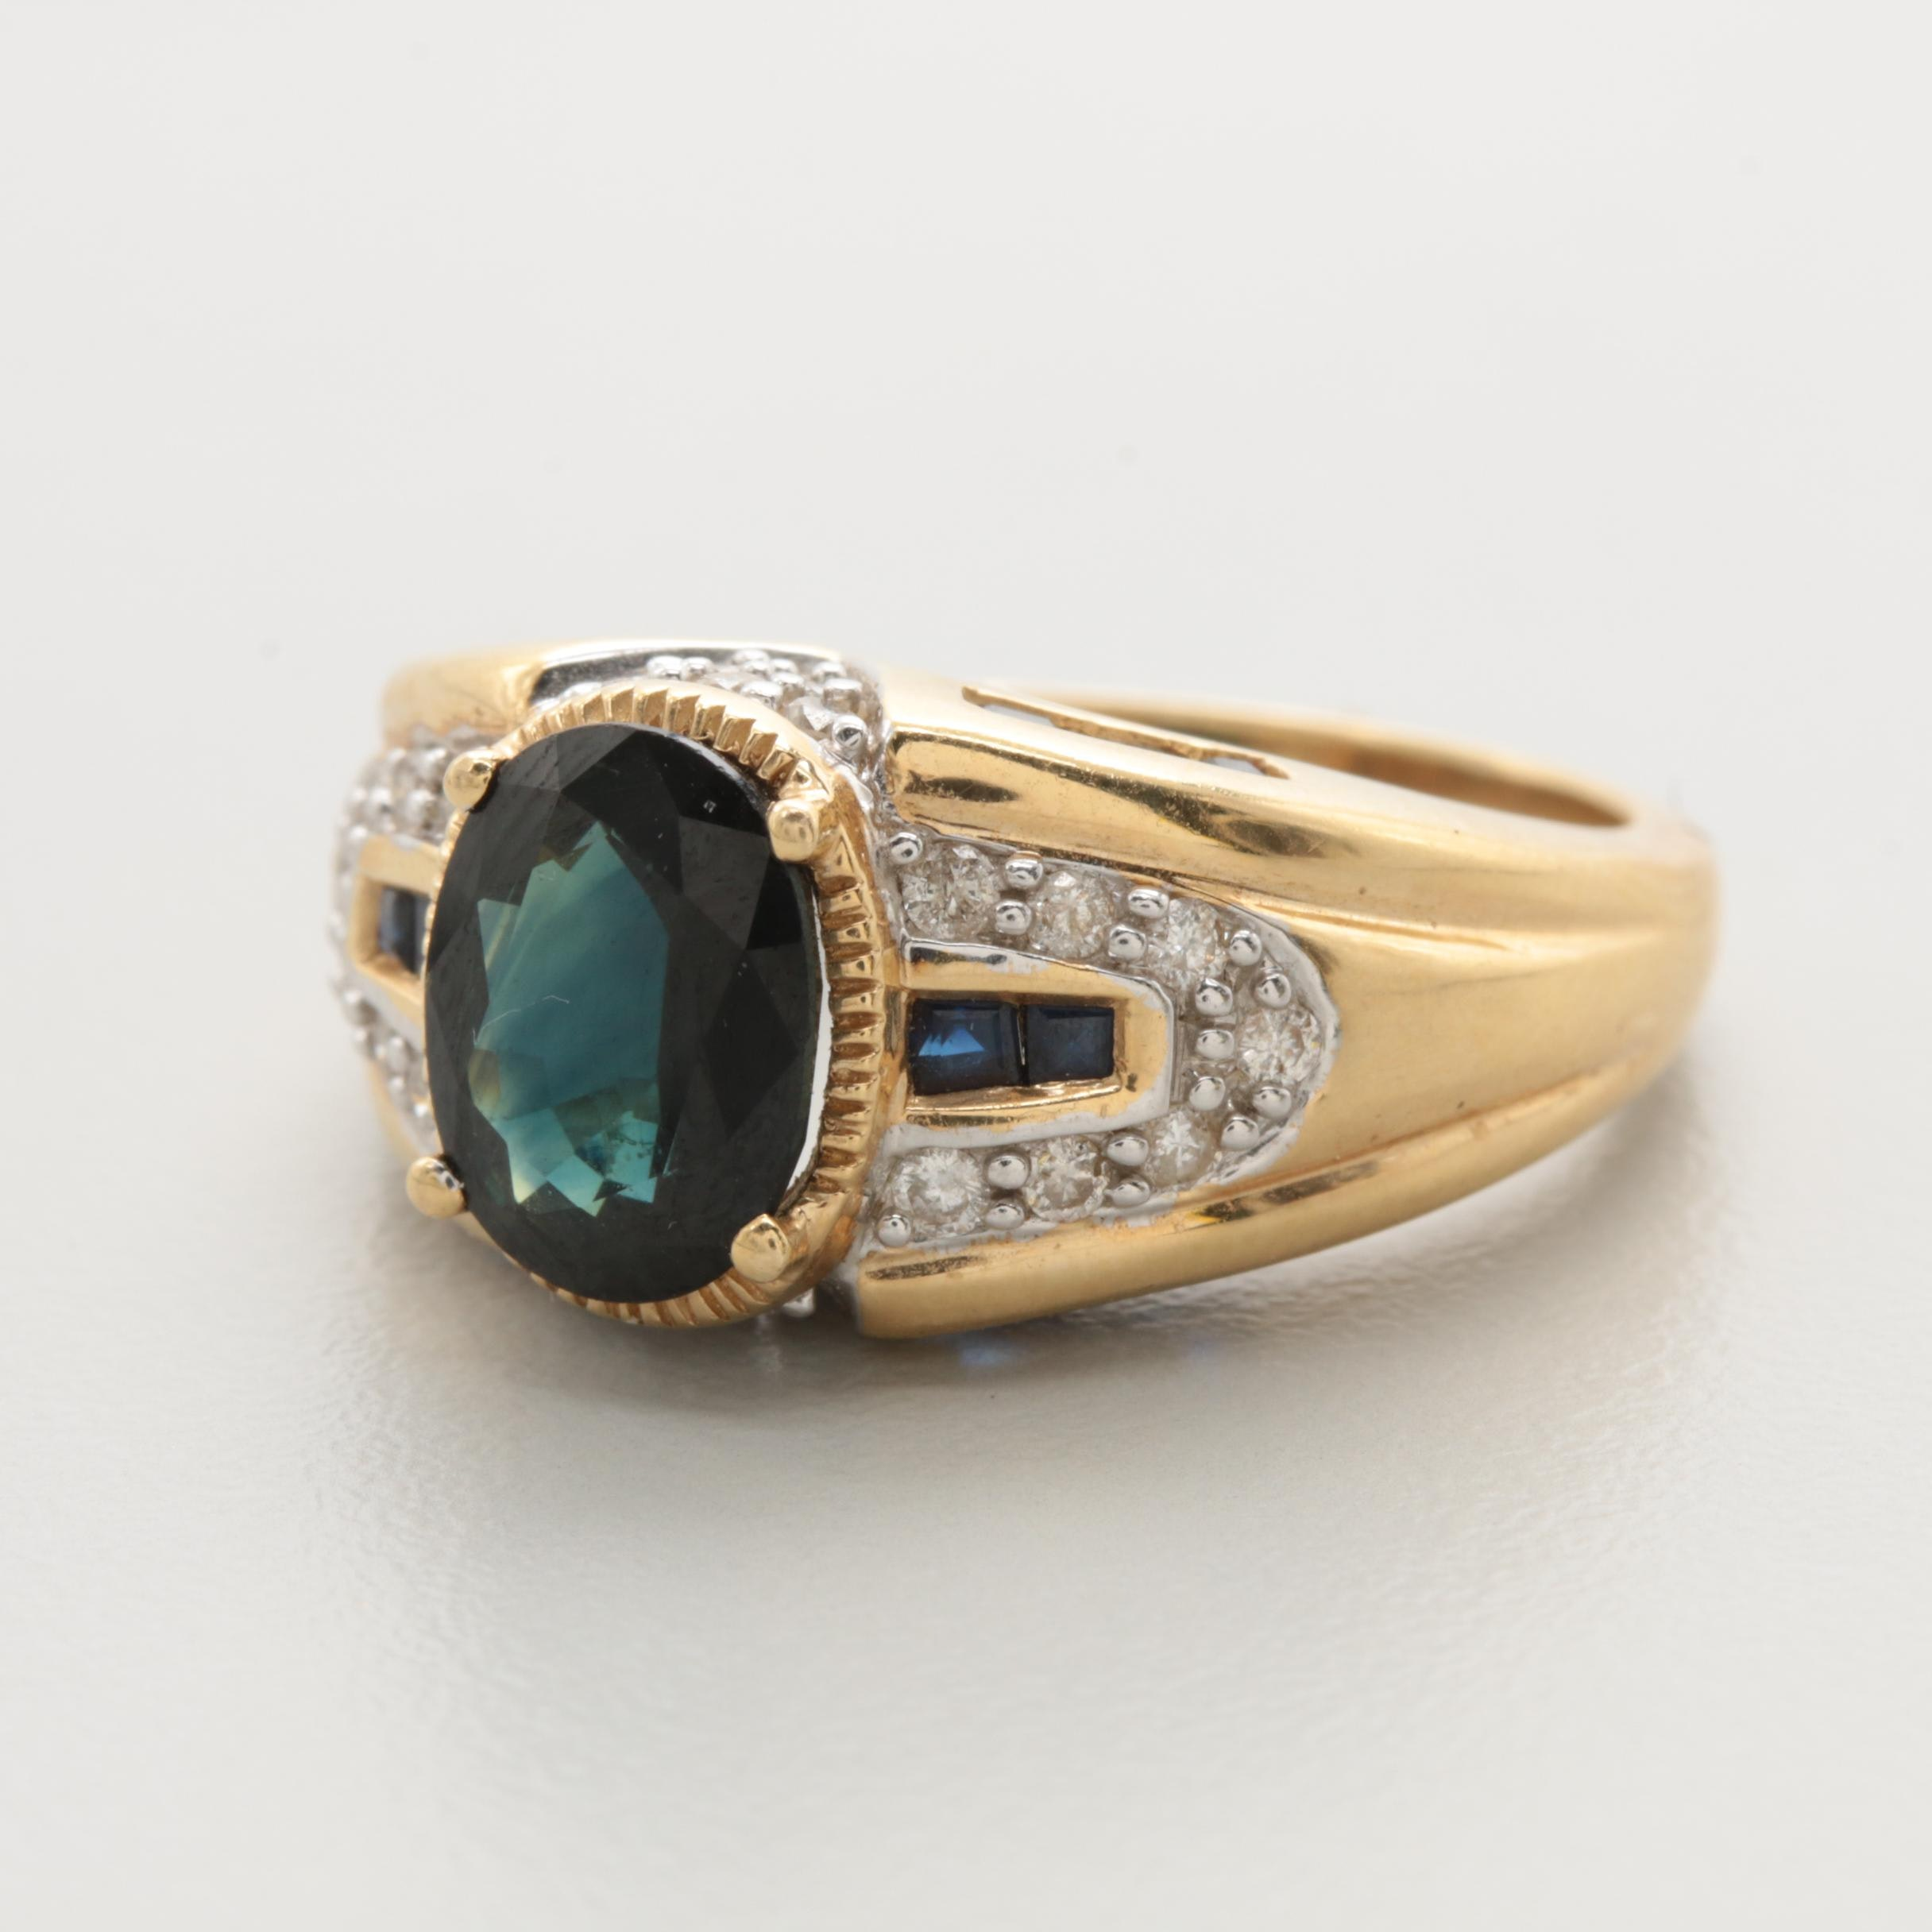 14K Yellow Gold Sapphire and Diamond Ring with 1.67 CT Center Stone